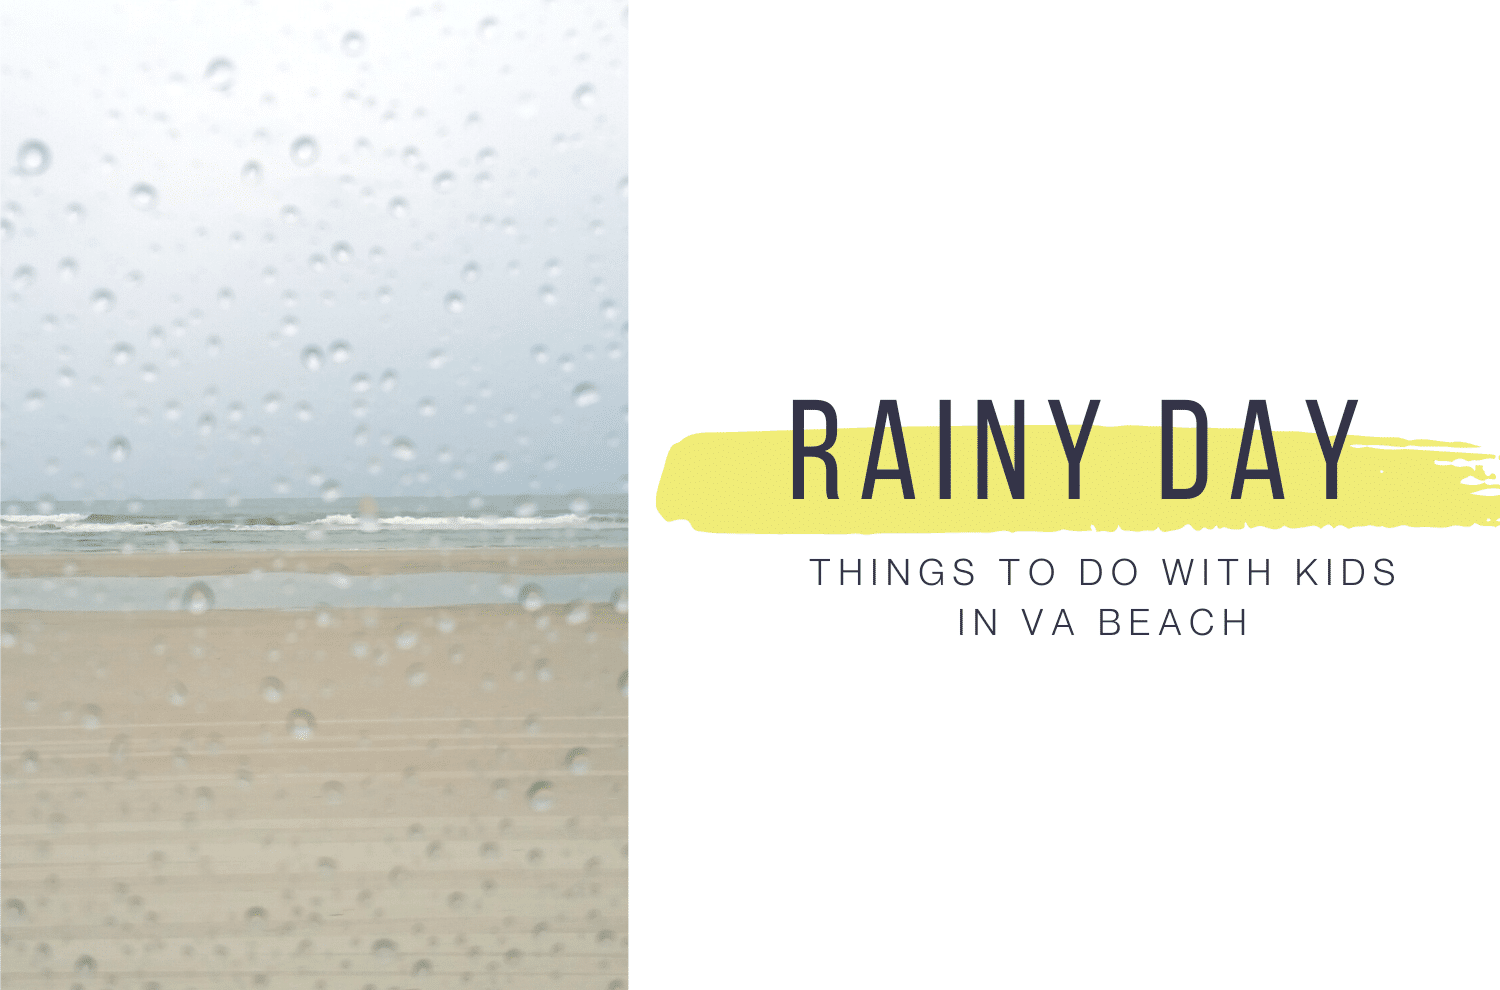 rainy day things to do with kids in virginia beach